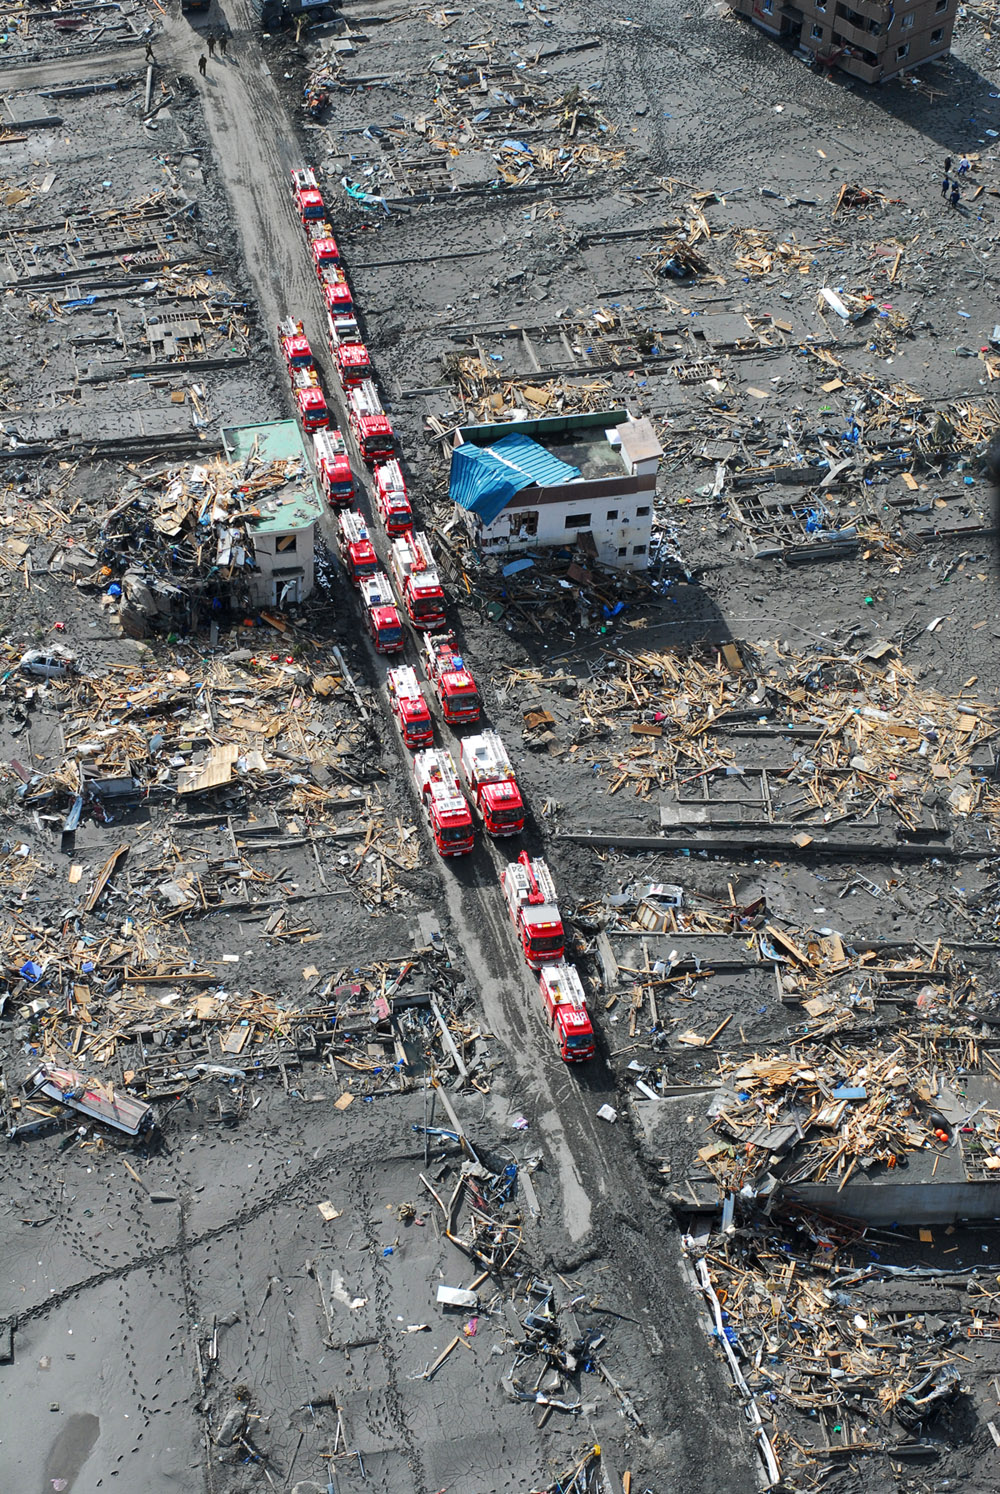 Nuclear Nightmare In Japan The Why Files Inside A Power Plant Diagram 18 Fire Trucks Two Rows Drive Down Street Debris And Destroyed Buildings Line